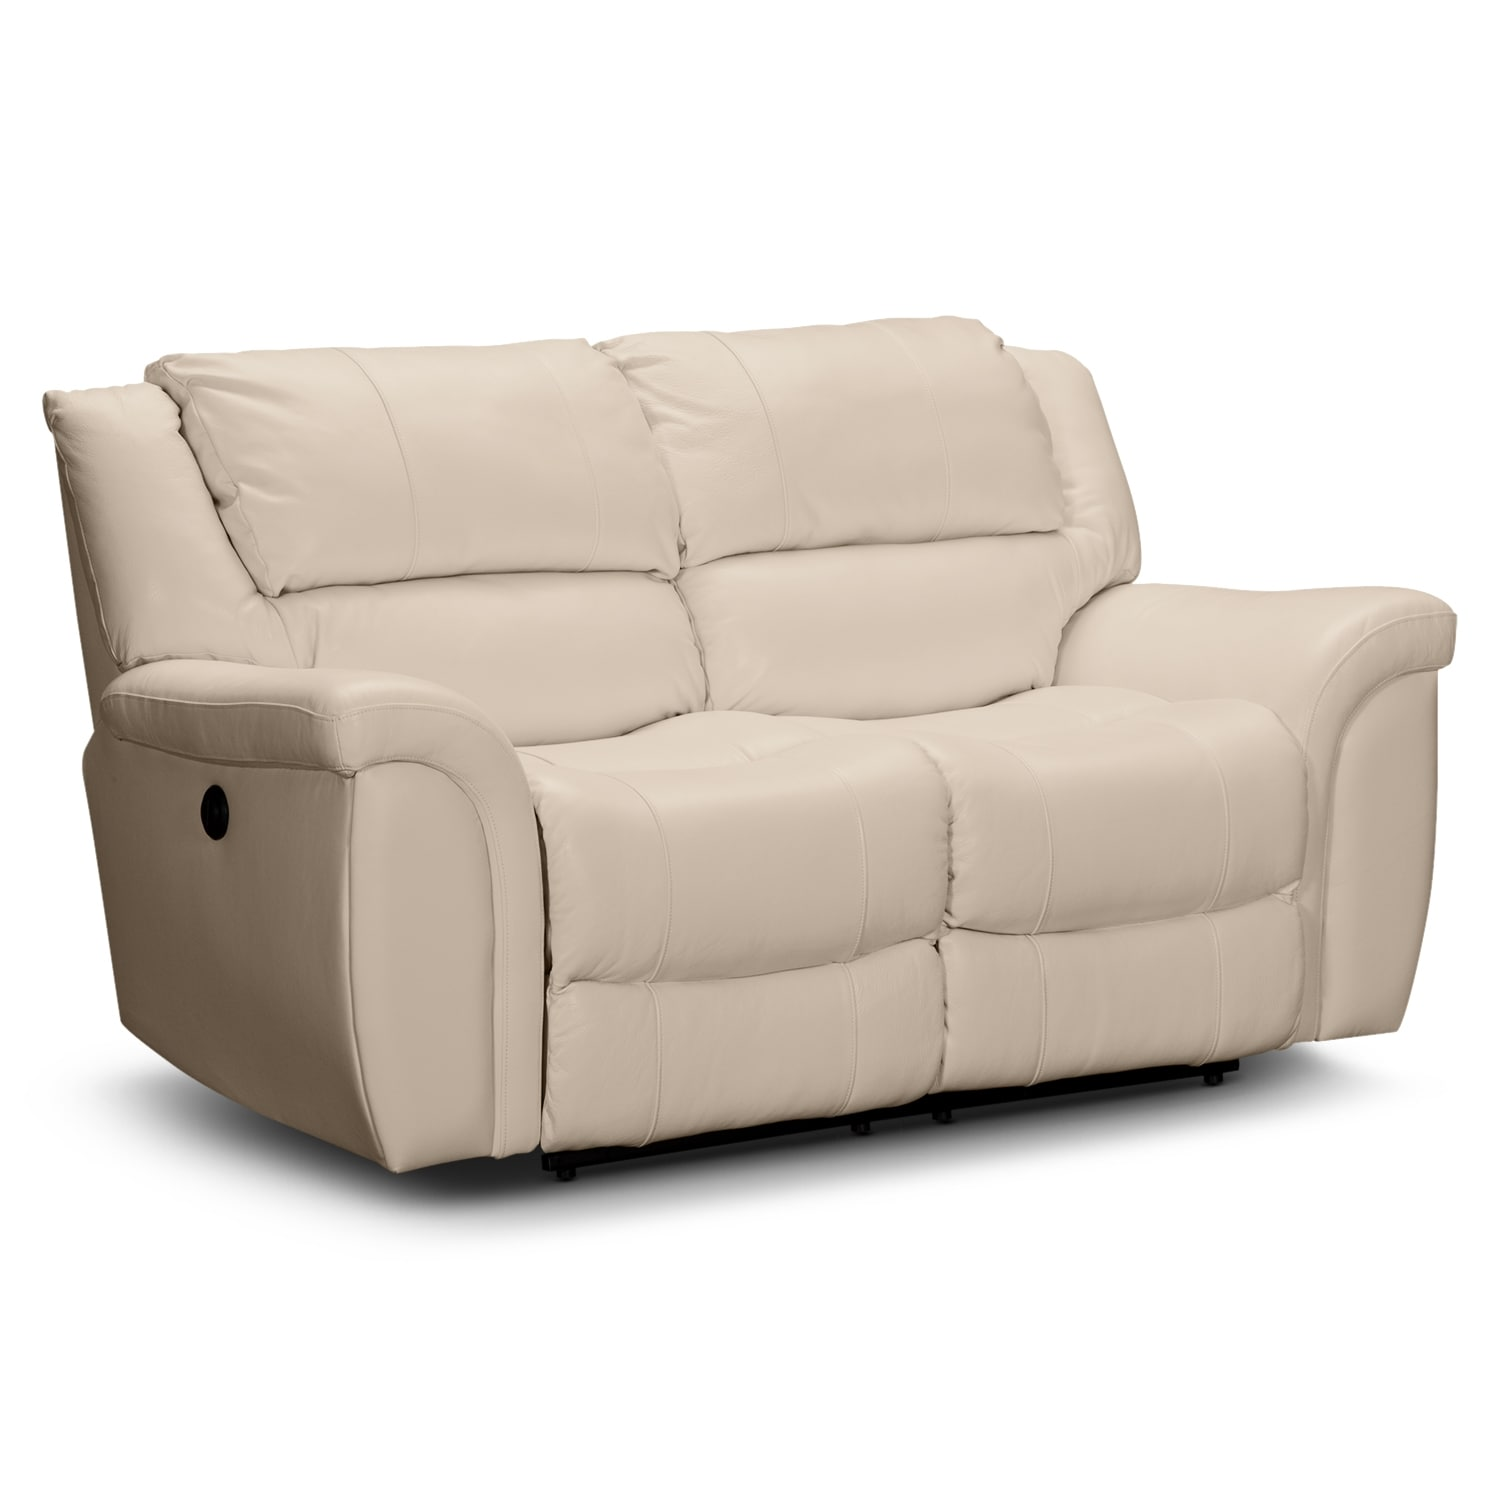 Aquarius Dual Power Reclining Loveseat